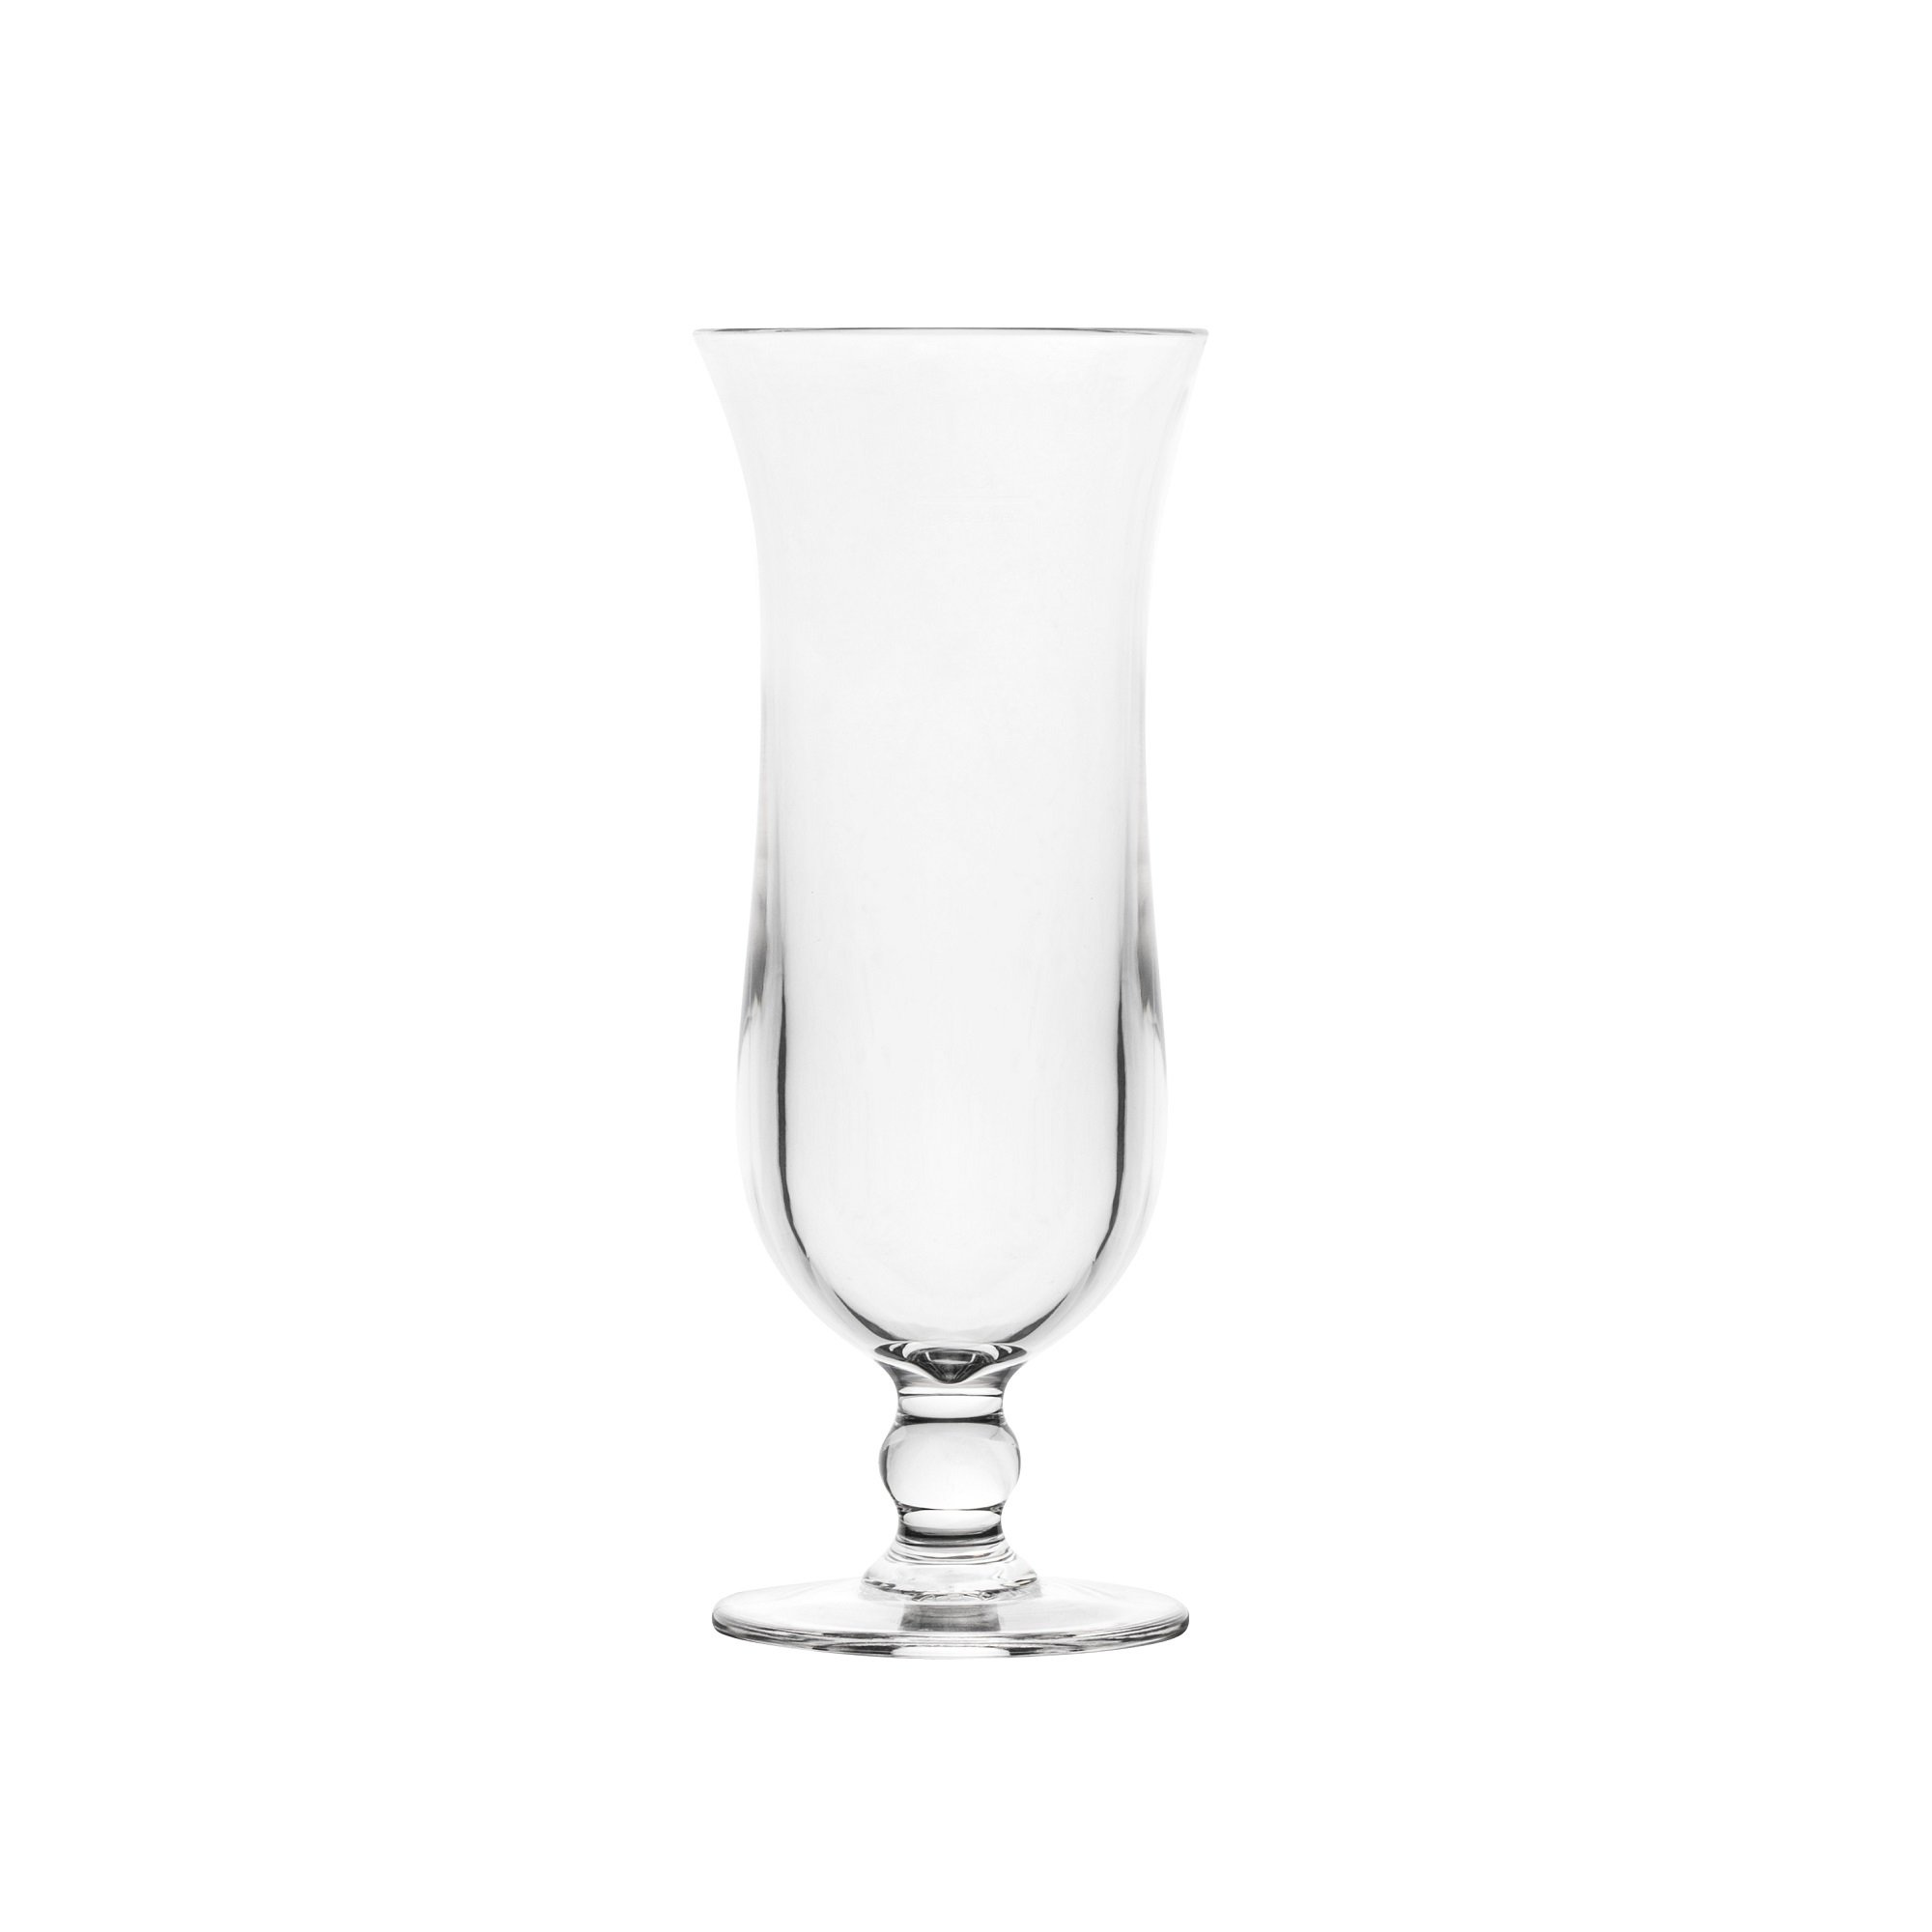 Blazun PS-A26 Unbreakable Polycarbonate Hurricane Cocktail Barware (Set of 6), 13.5 oz, Clear